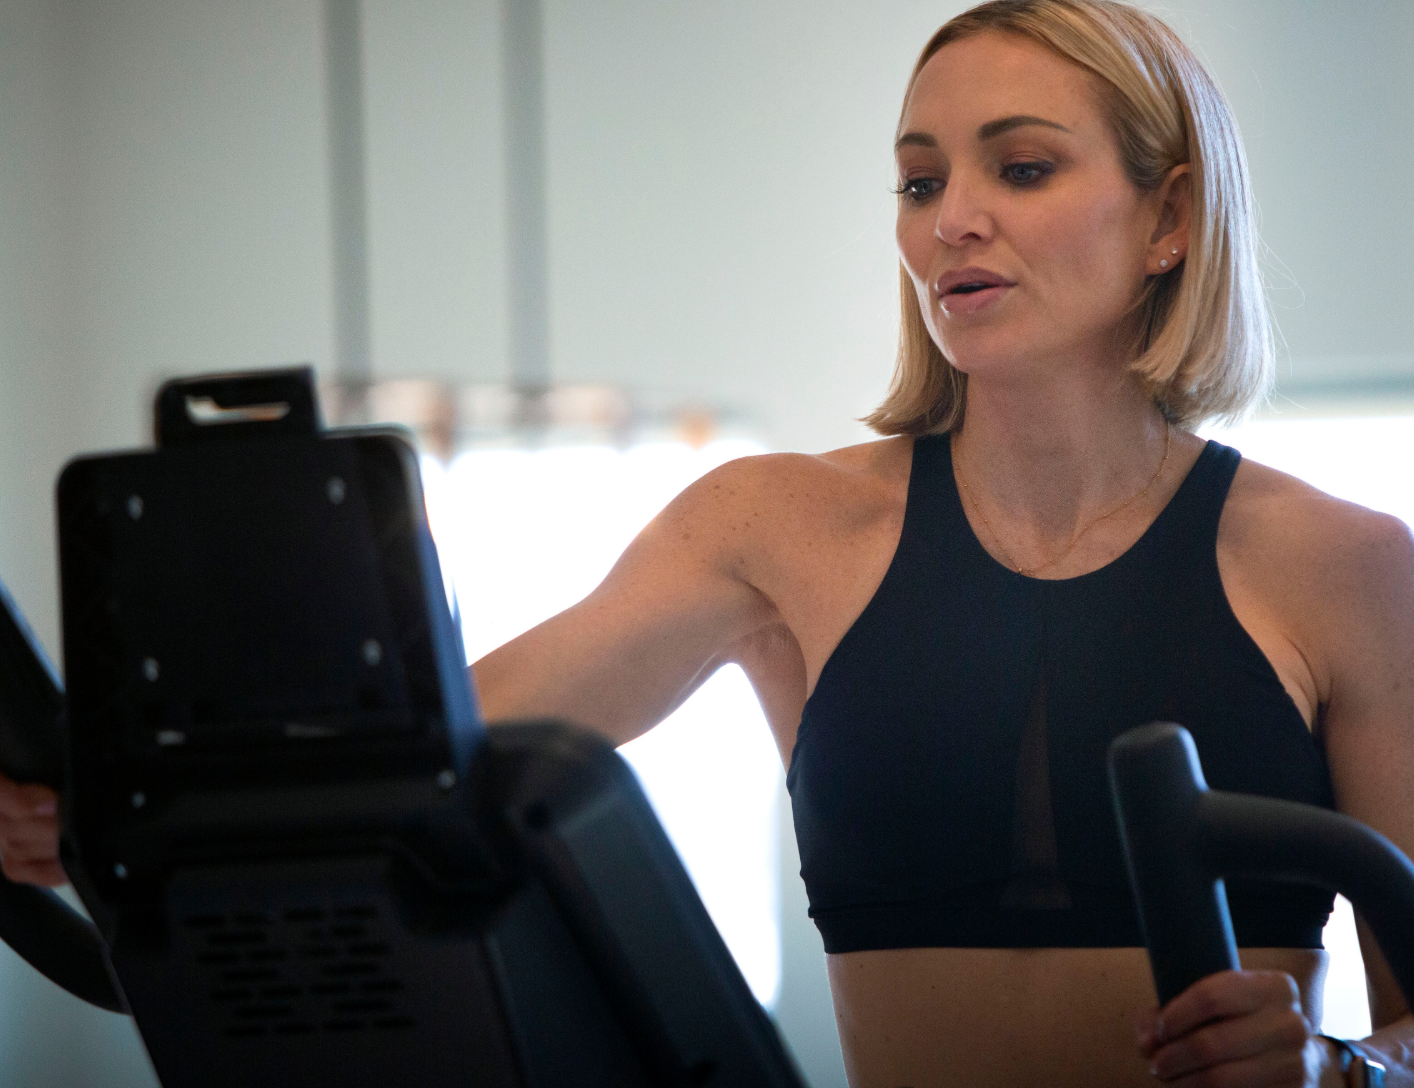 Did You Know Sole Treadmills Offer Many Different Types Of Technology Check Out Our List Of Services We Offer With Dif Fitness Blog Fitness Goals Apple Health